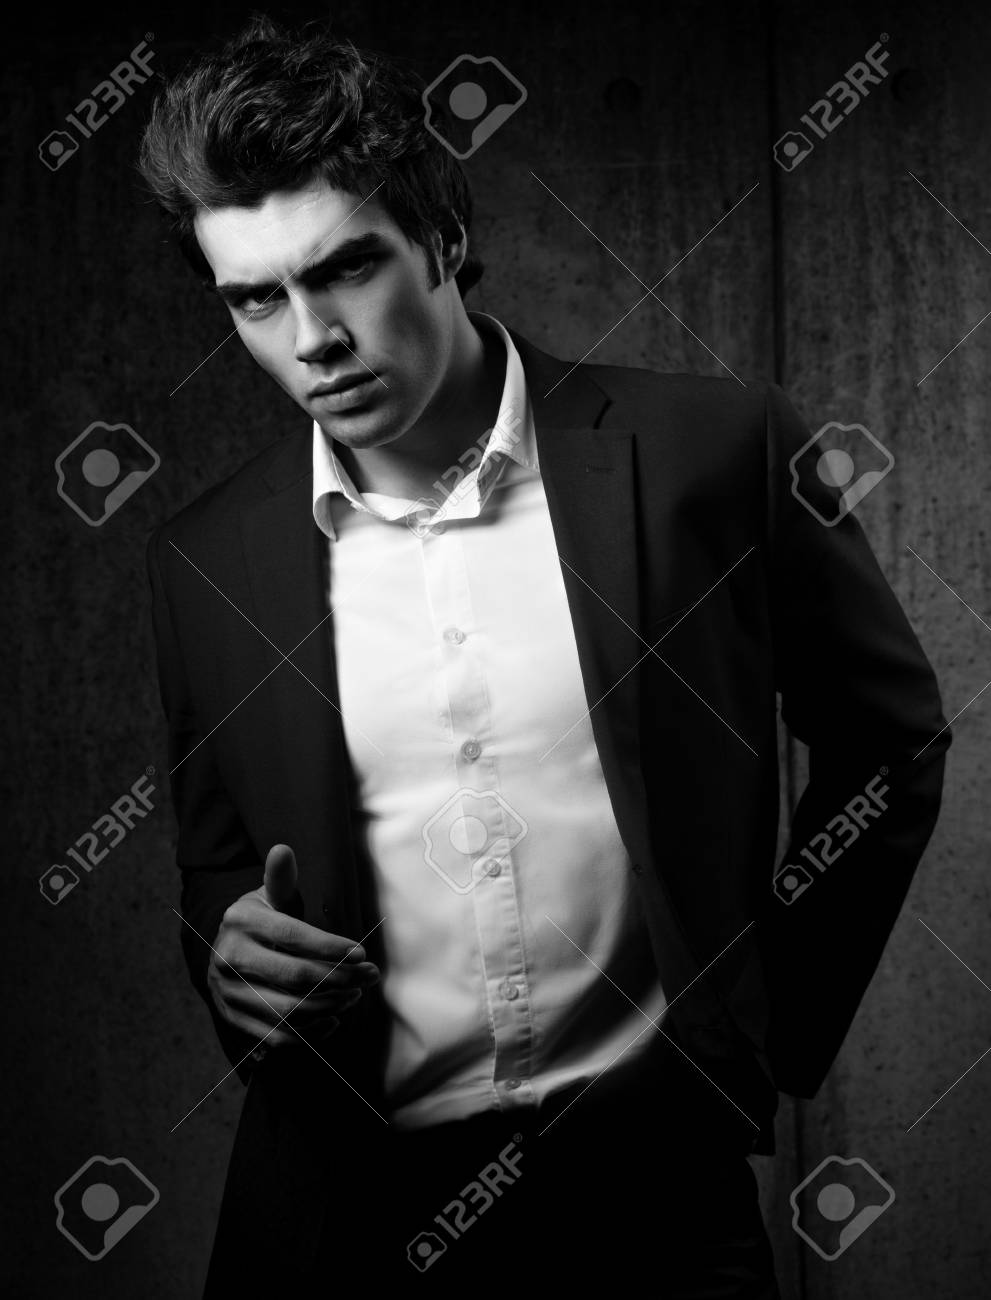 Sexy handsome male model posing in black fashion suit and white style shirt on dark shadow